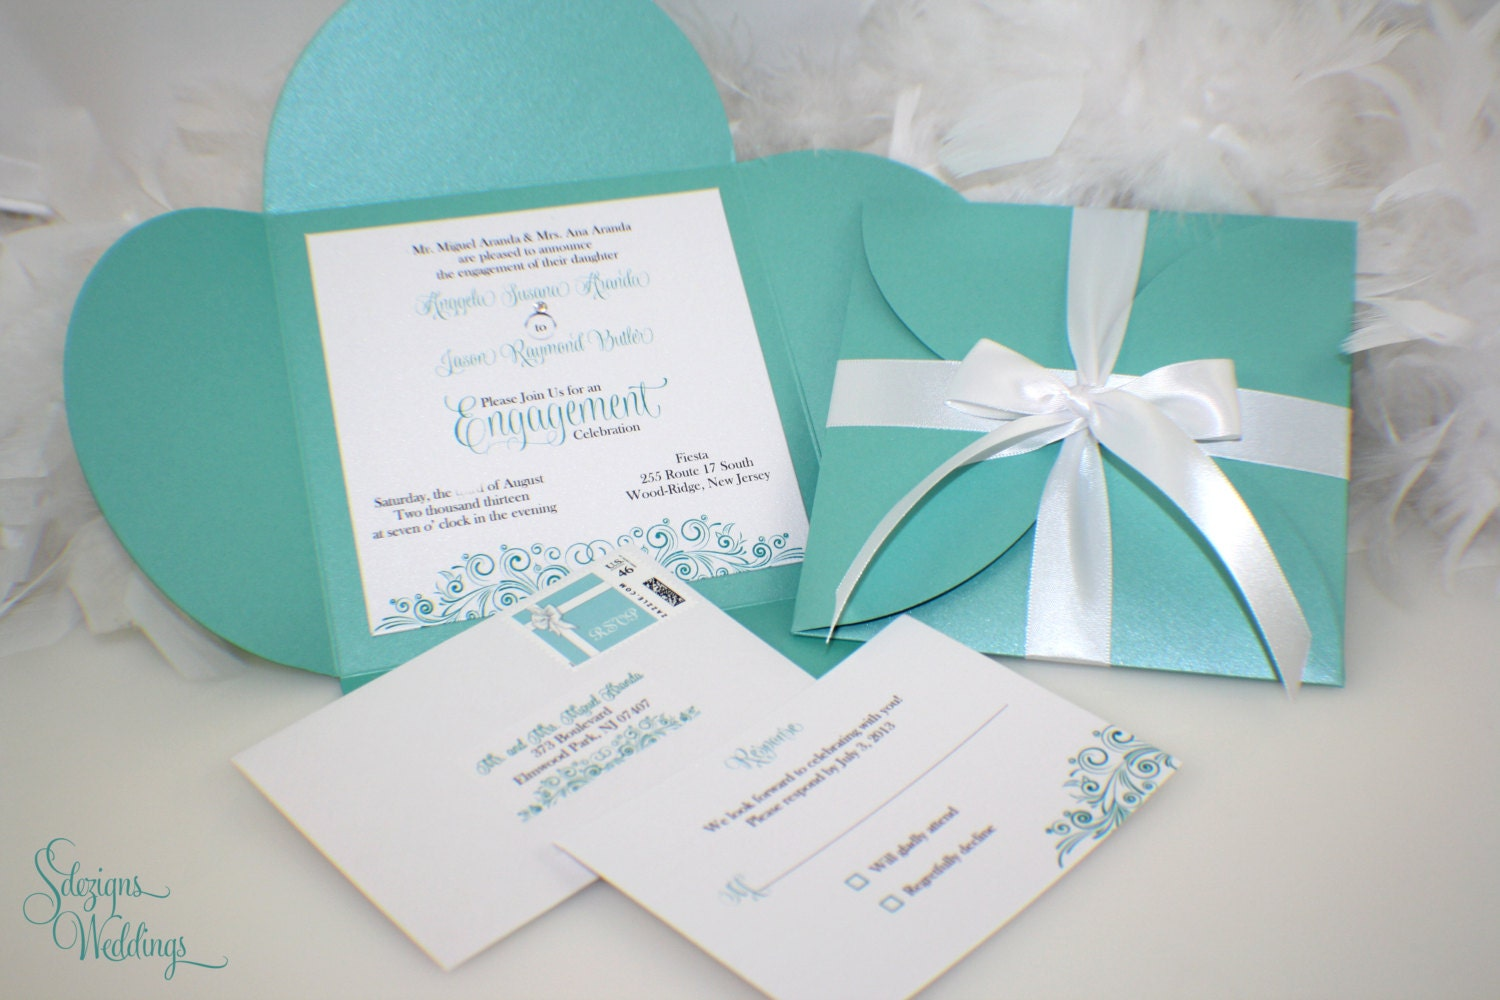 Engagement Party Invitations Aqua Blue Turquoise Gift – Engagement Party Invitations Etsy